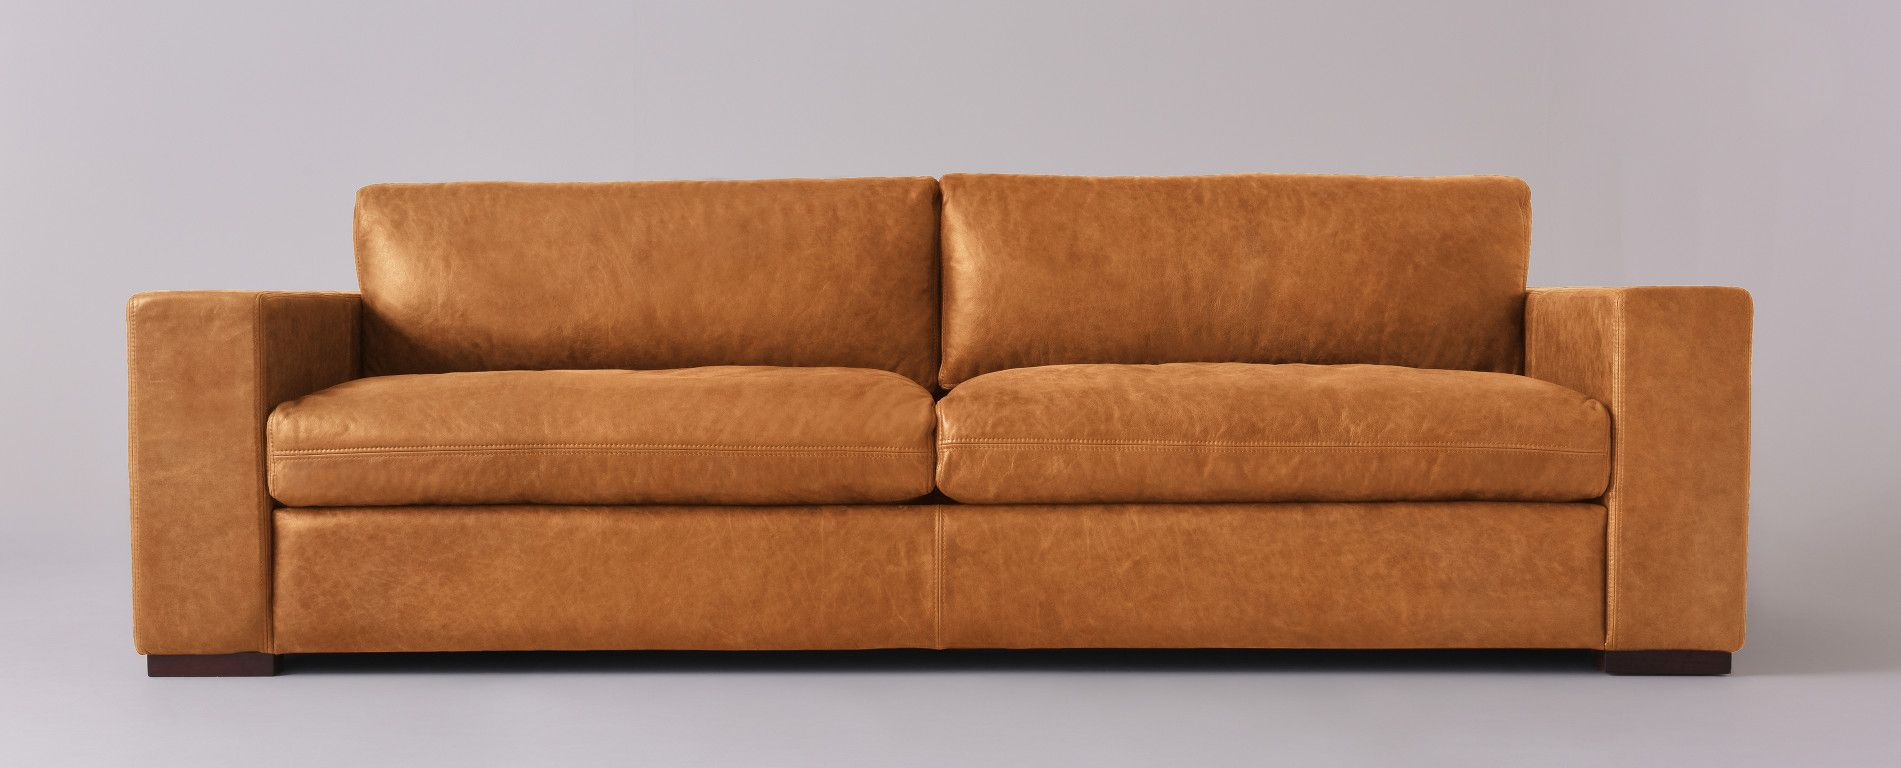 Aberdeen Leather Sofa 32 H X 96 W 41 D Sixpenny